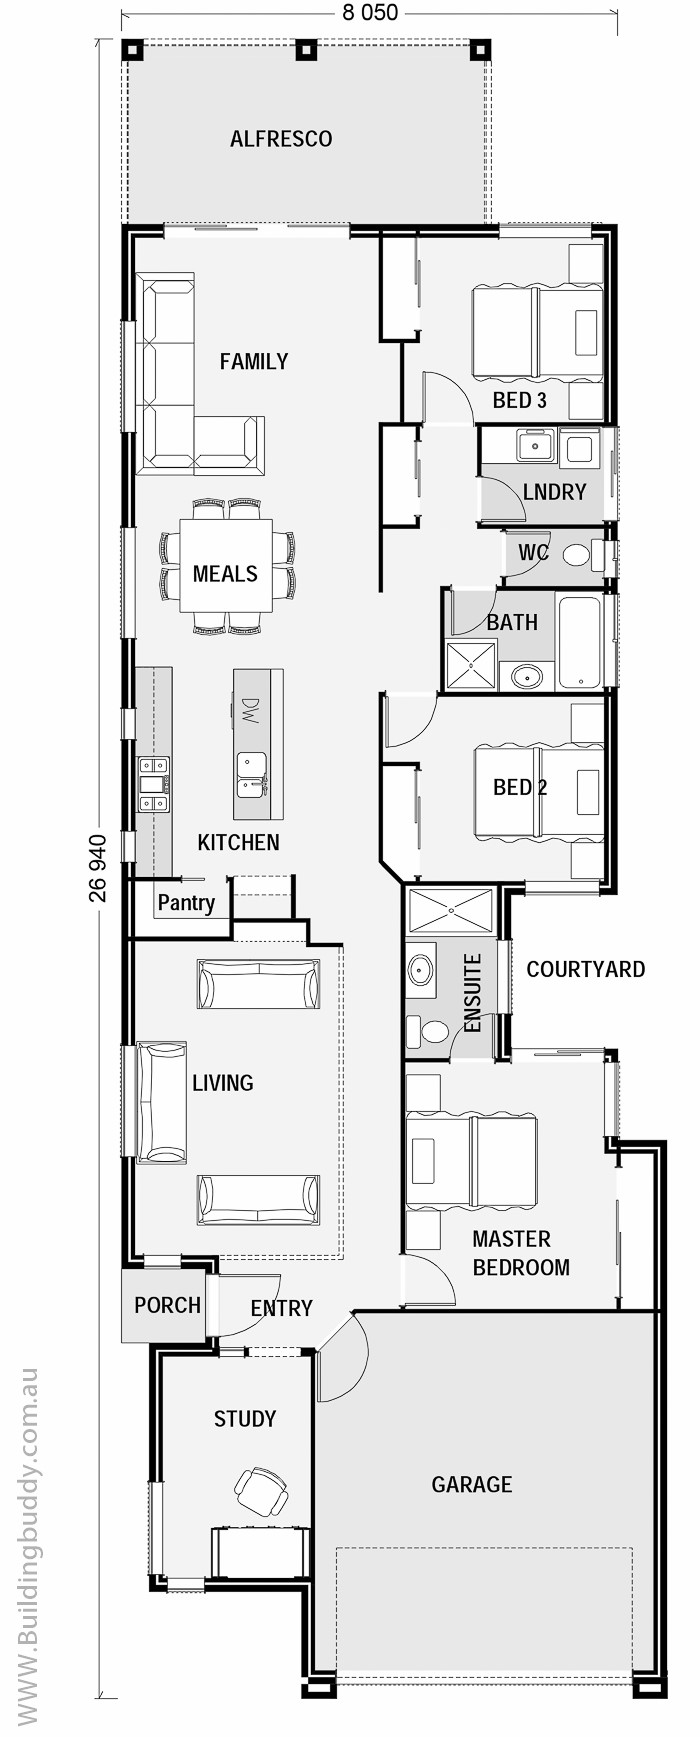 House Plans, Home Designs, Building Prices & Builders ...